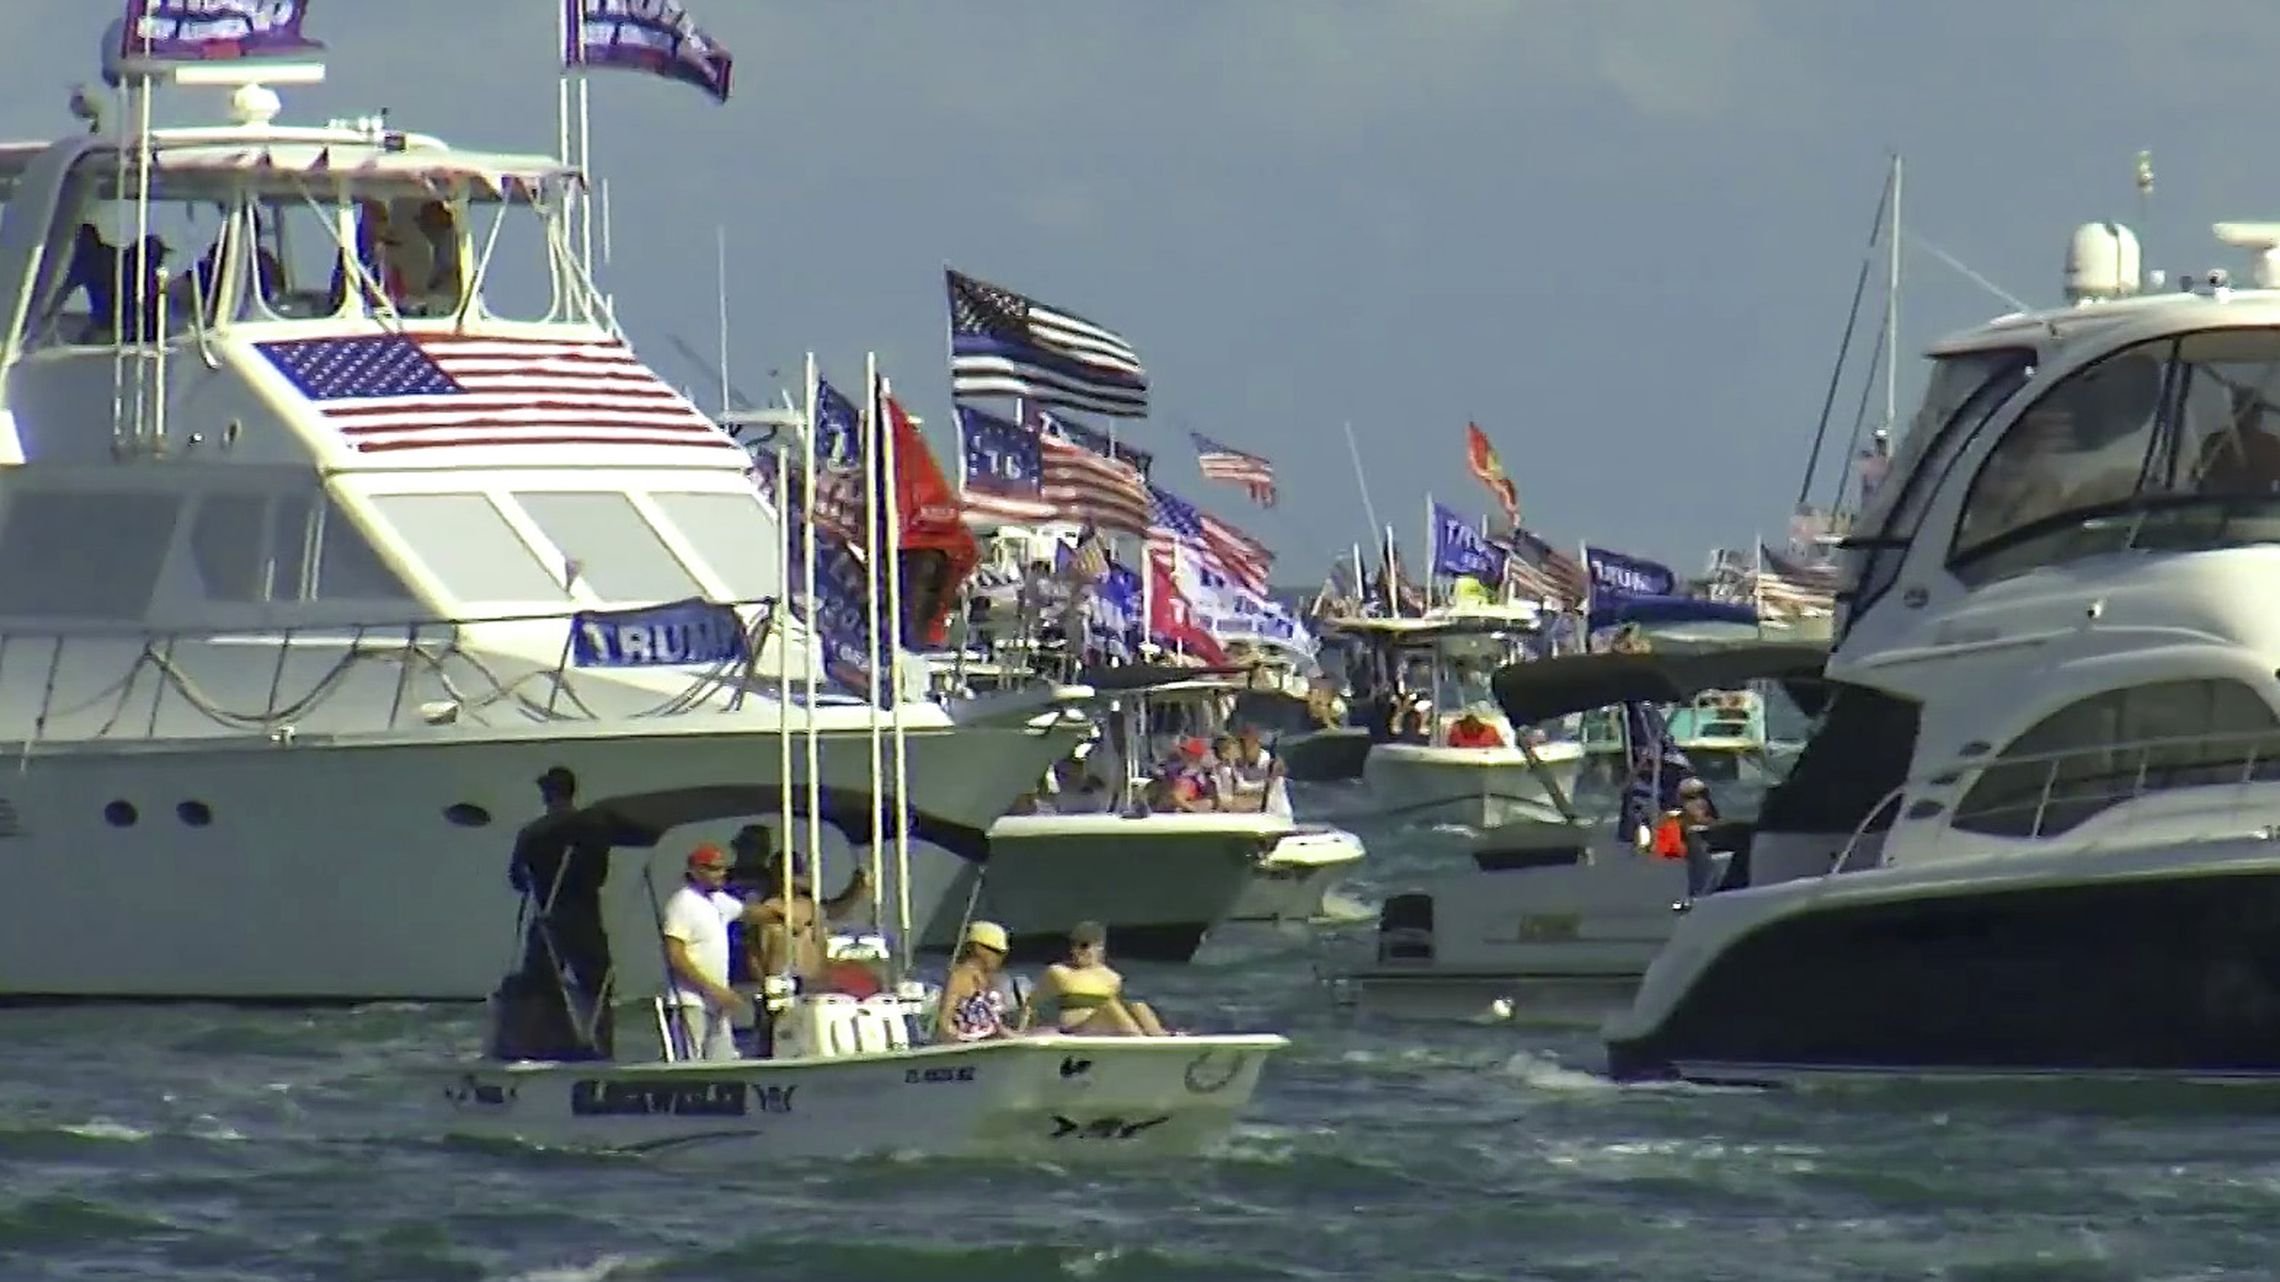 Trump Florida And Boat Parades How The President Is Owning The Ocean